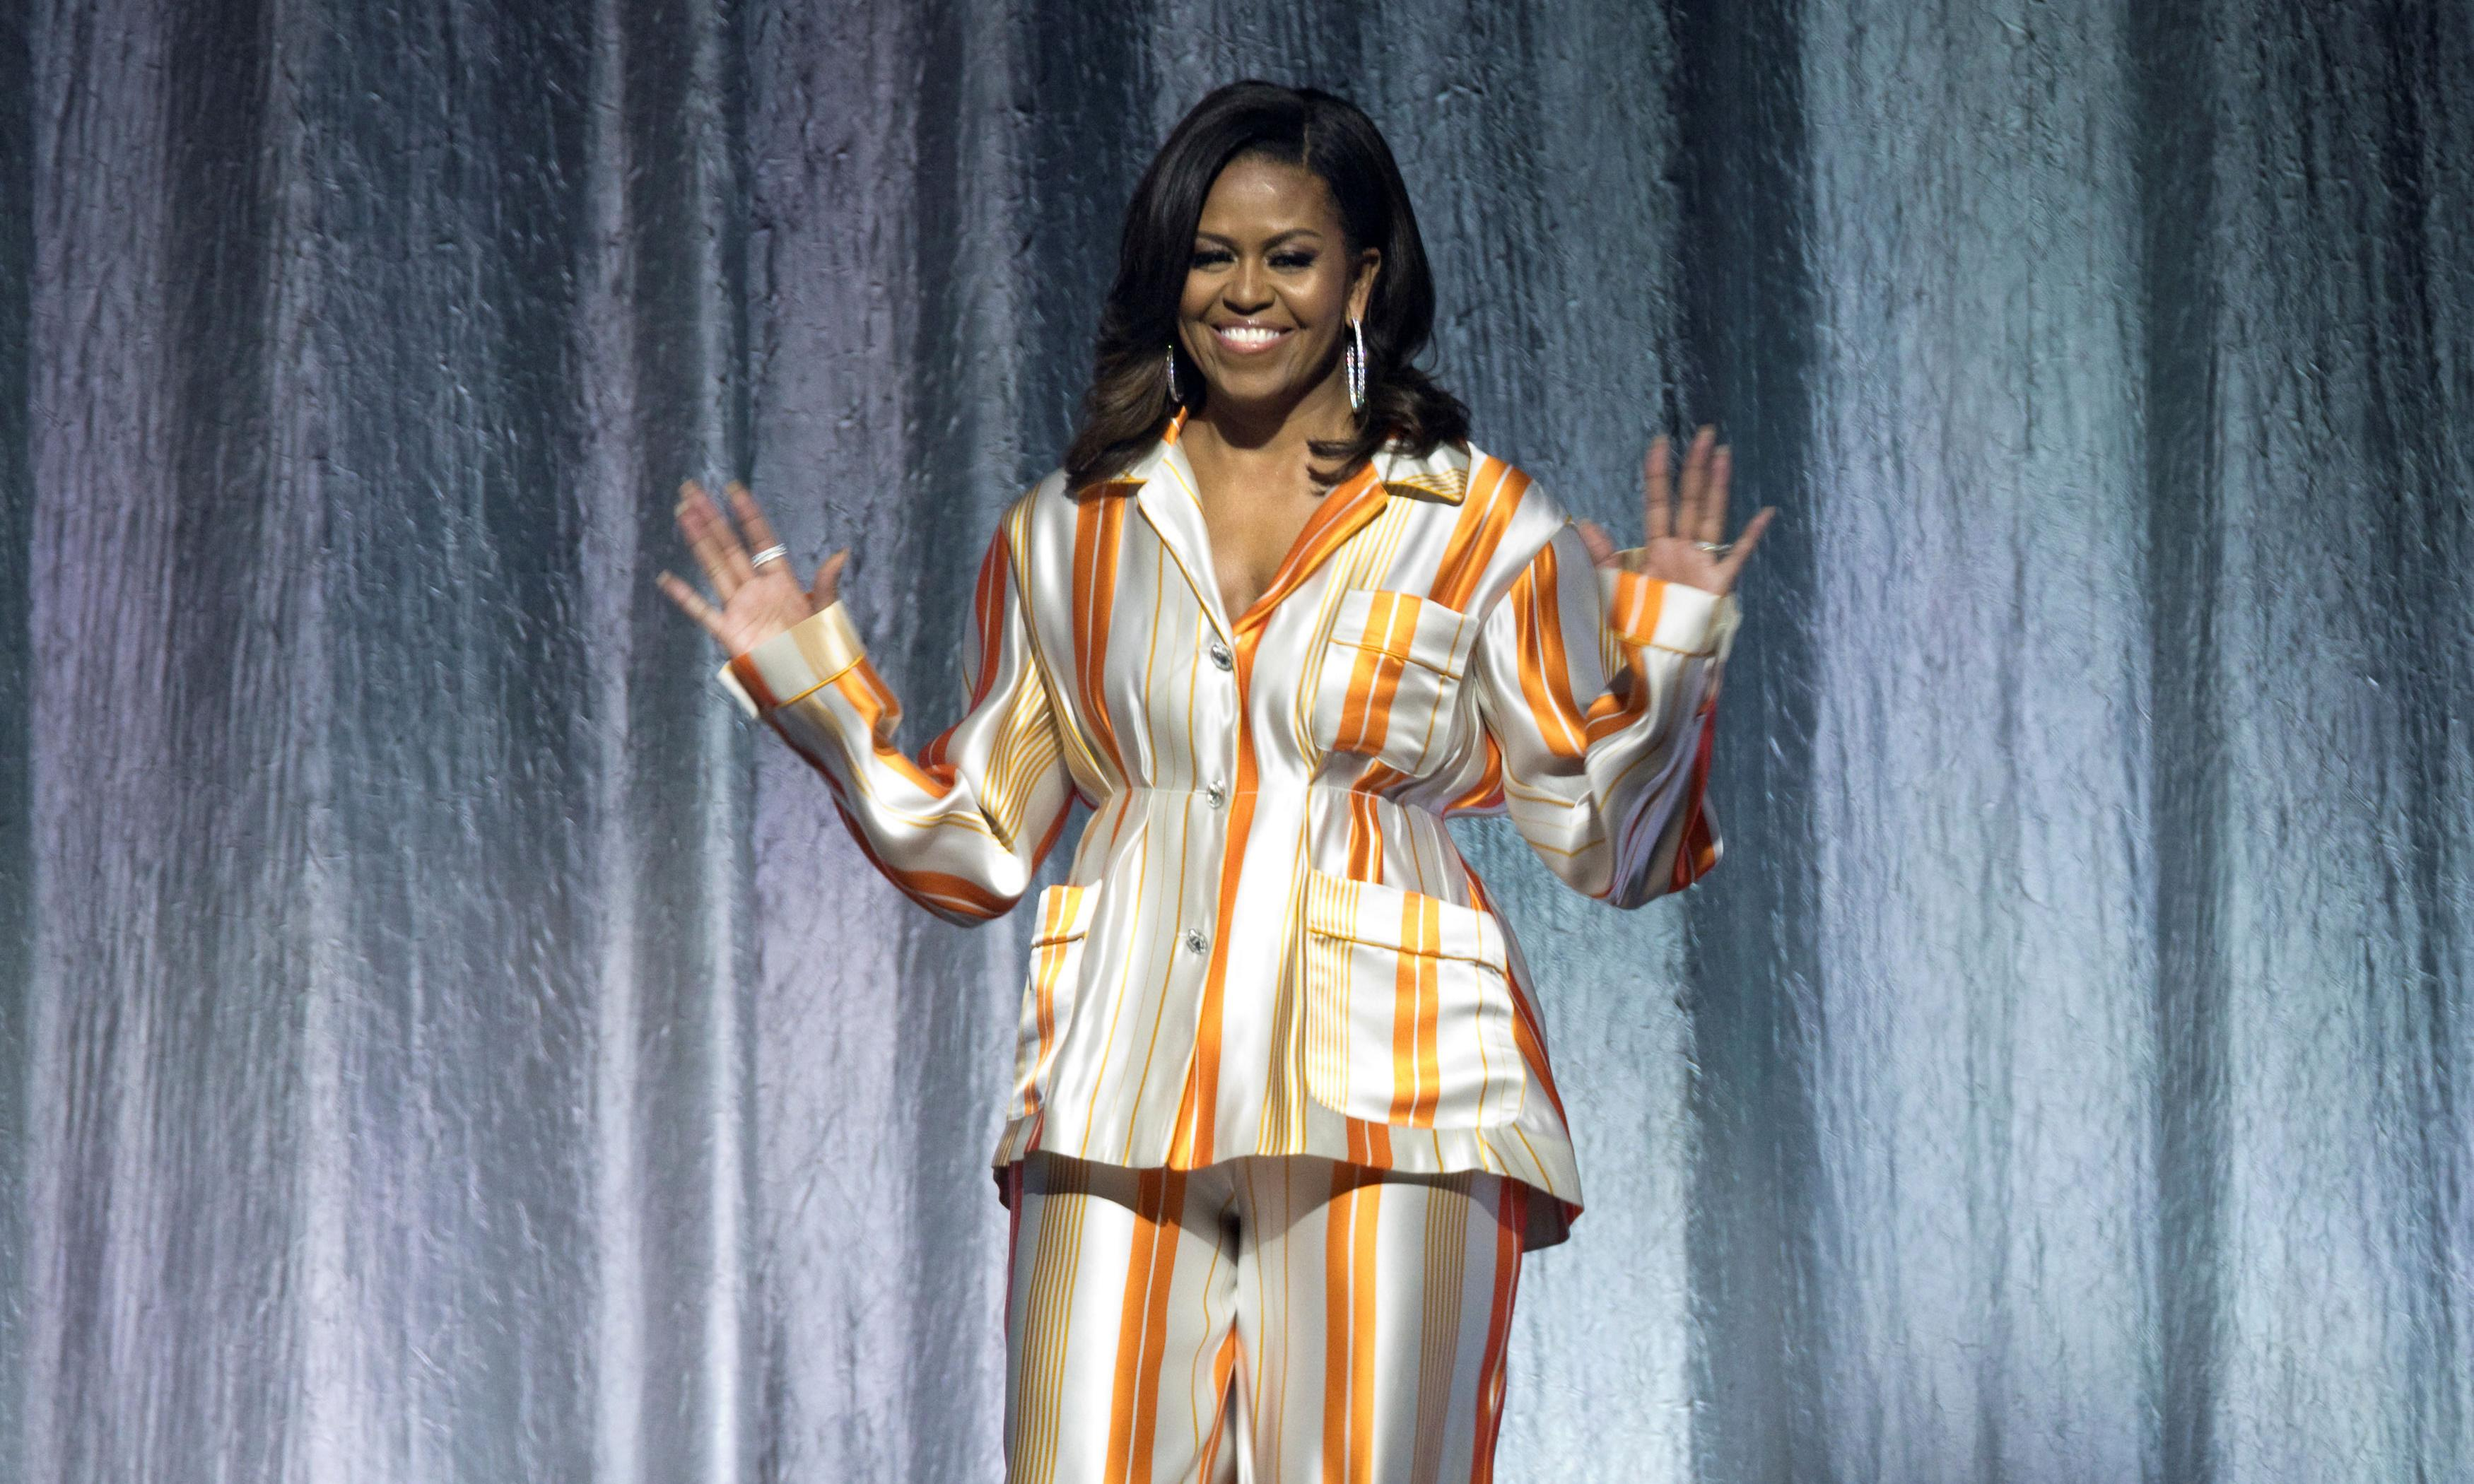 The fashion diplomat: what Michelle Obama wore on her book tour